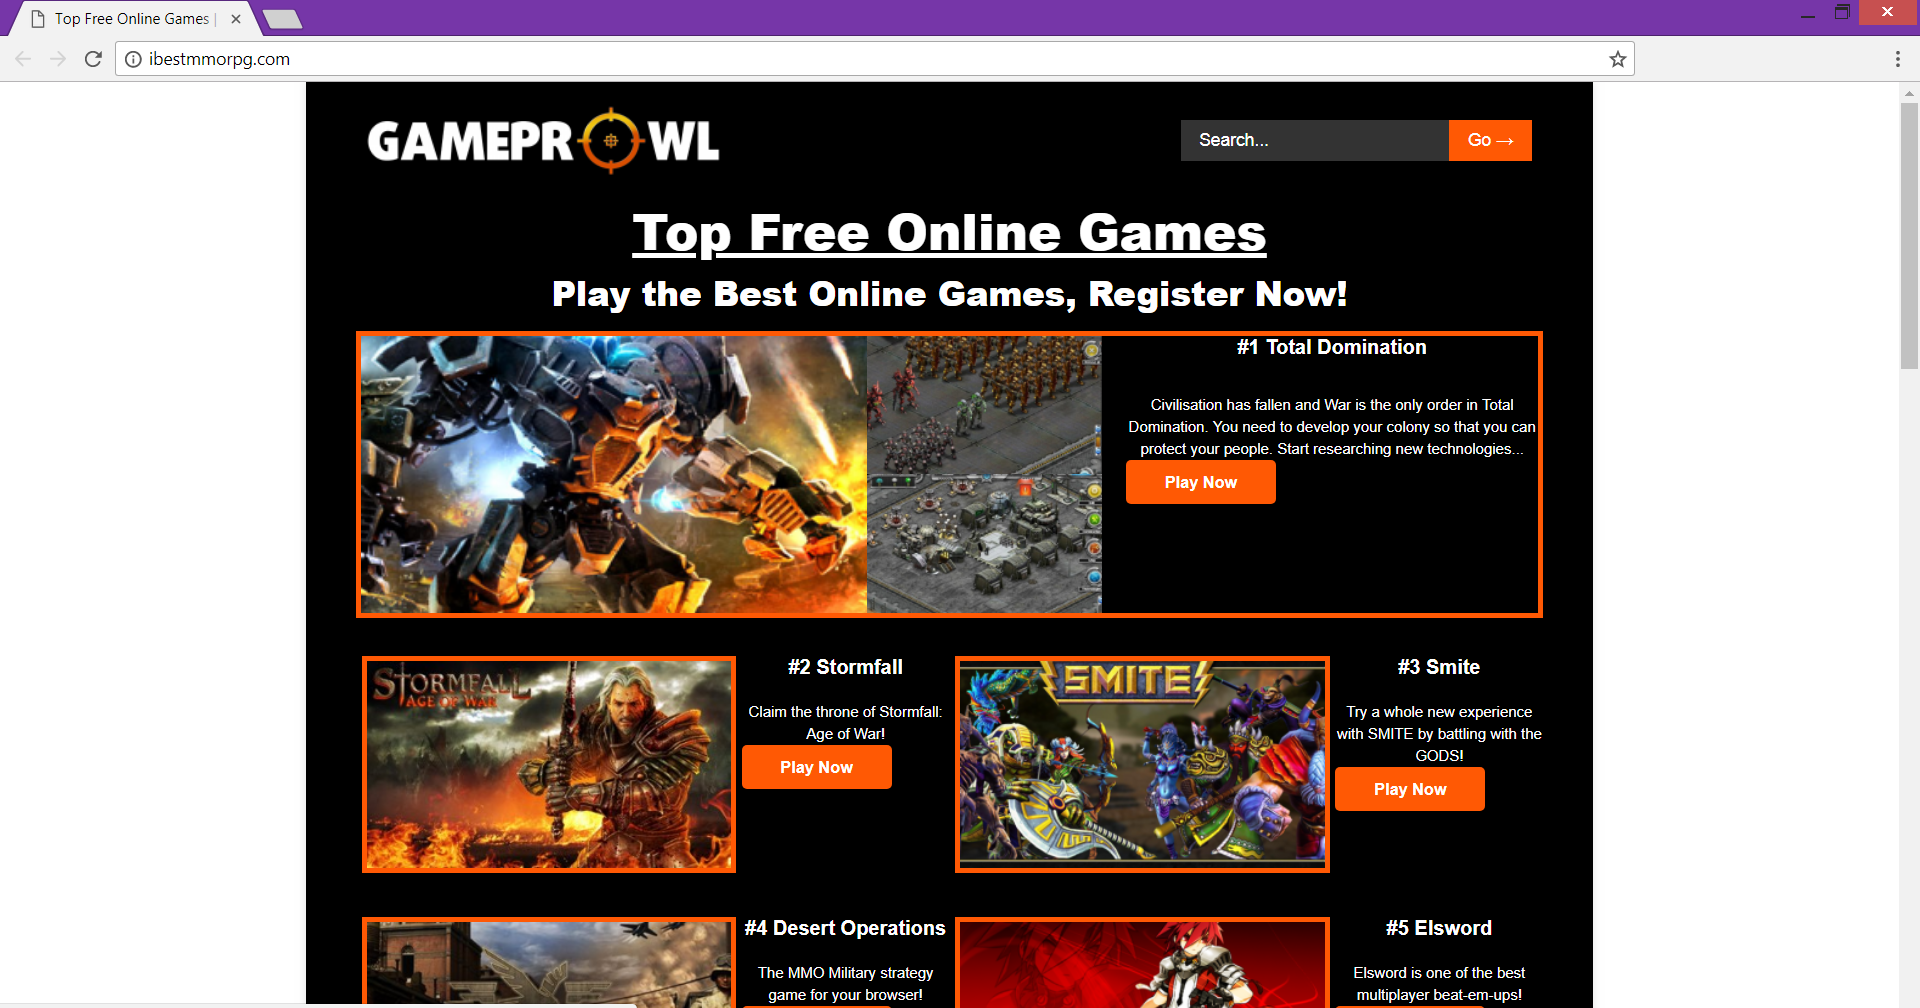 ibestmmorpg.com dubious gaming website